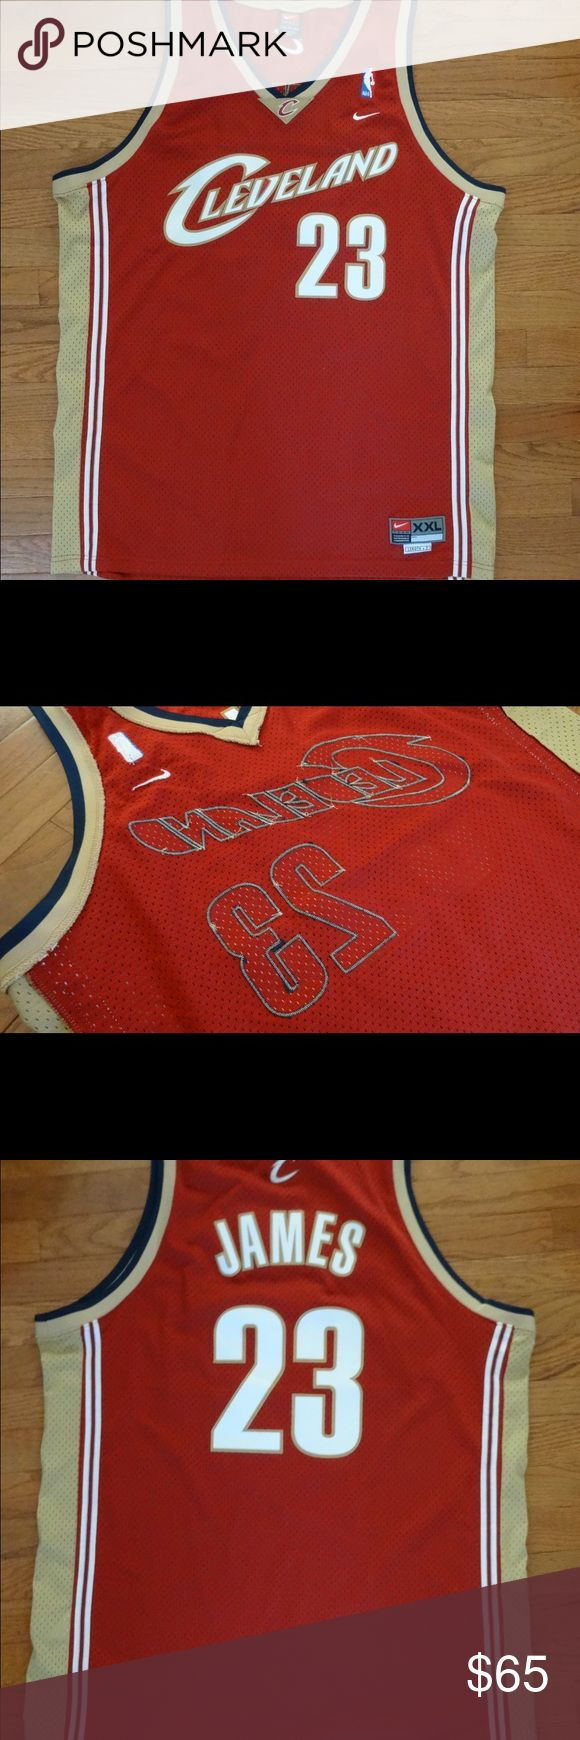 Nike LEBRON JAMES Cleveland XXL Jersey stitched Stitched letter and numbers. Cleveland Cavaliers. 23 LeBron James. XXL length +2, Nike. NS/NP home Nike Shirts Tank Tops